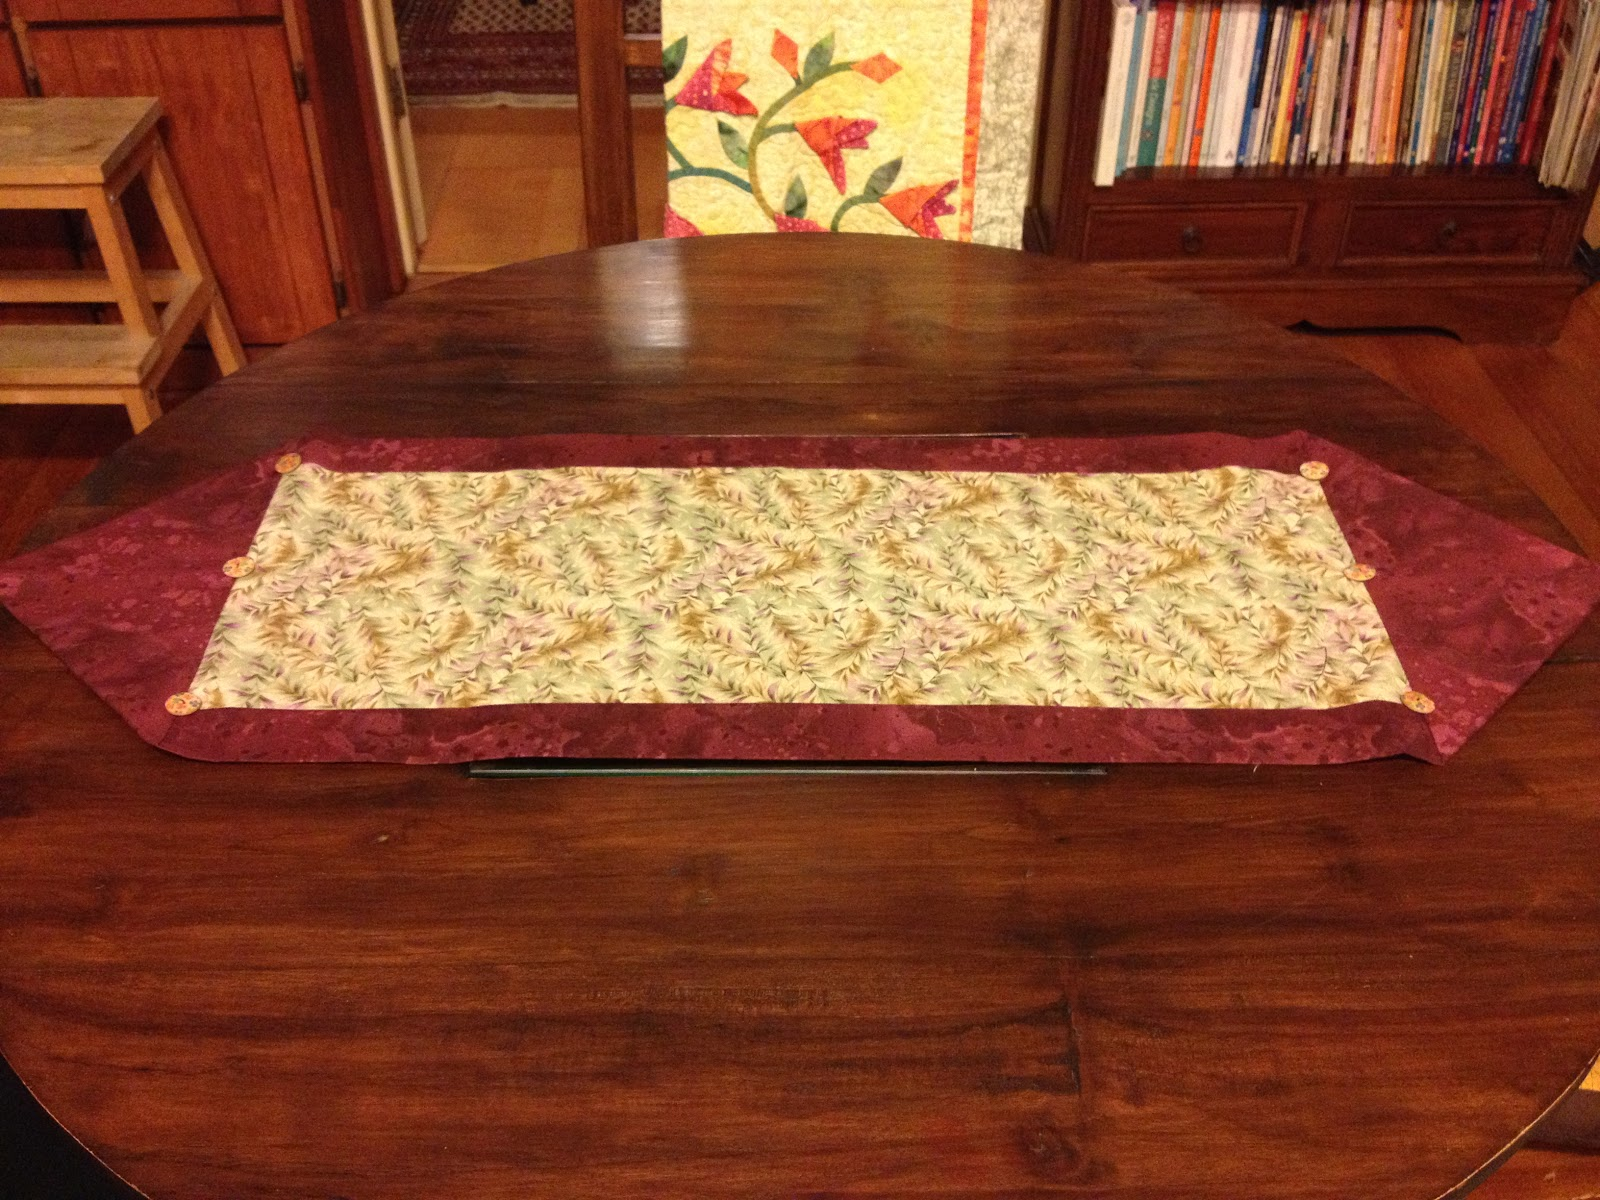 Pretty ideas juq 10 minute table runner for 10 min table runner